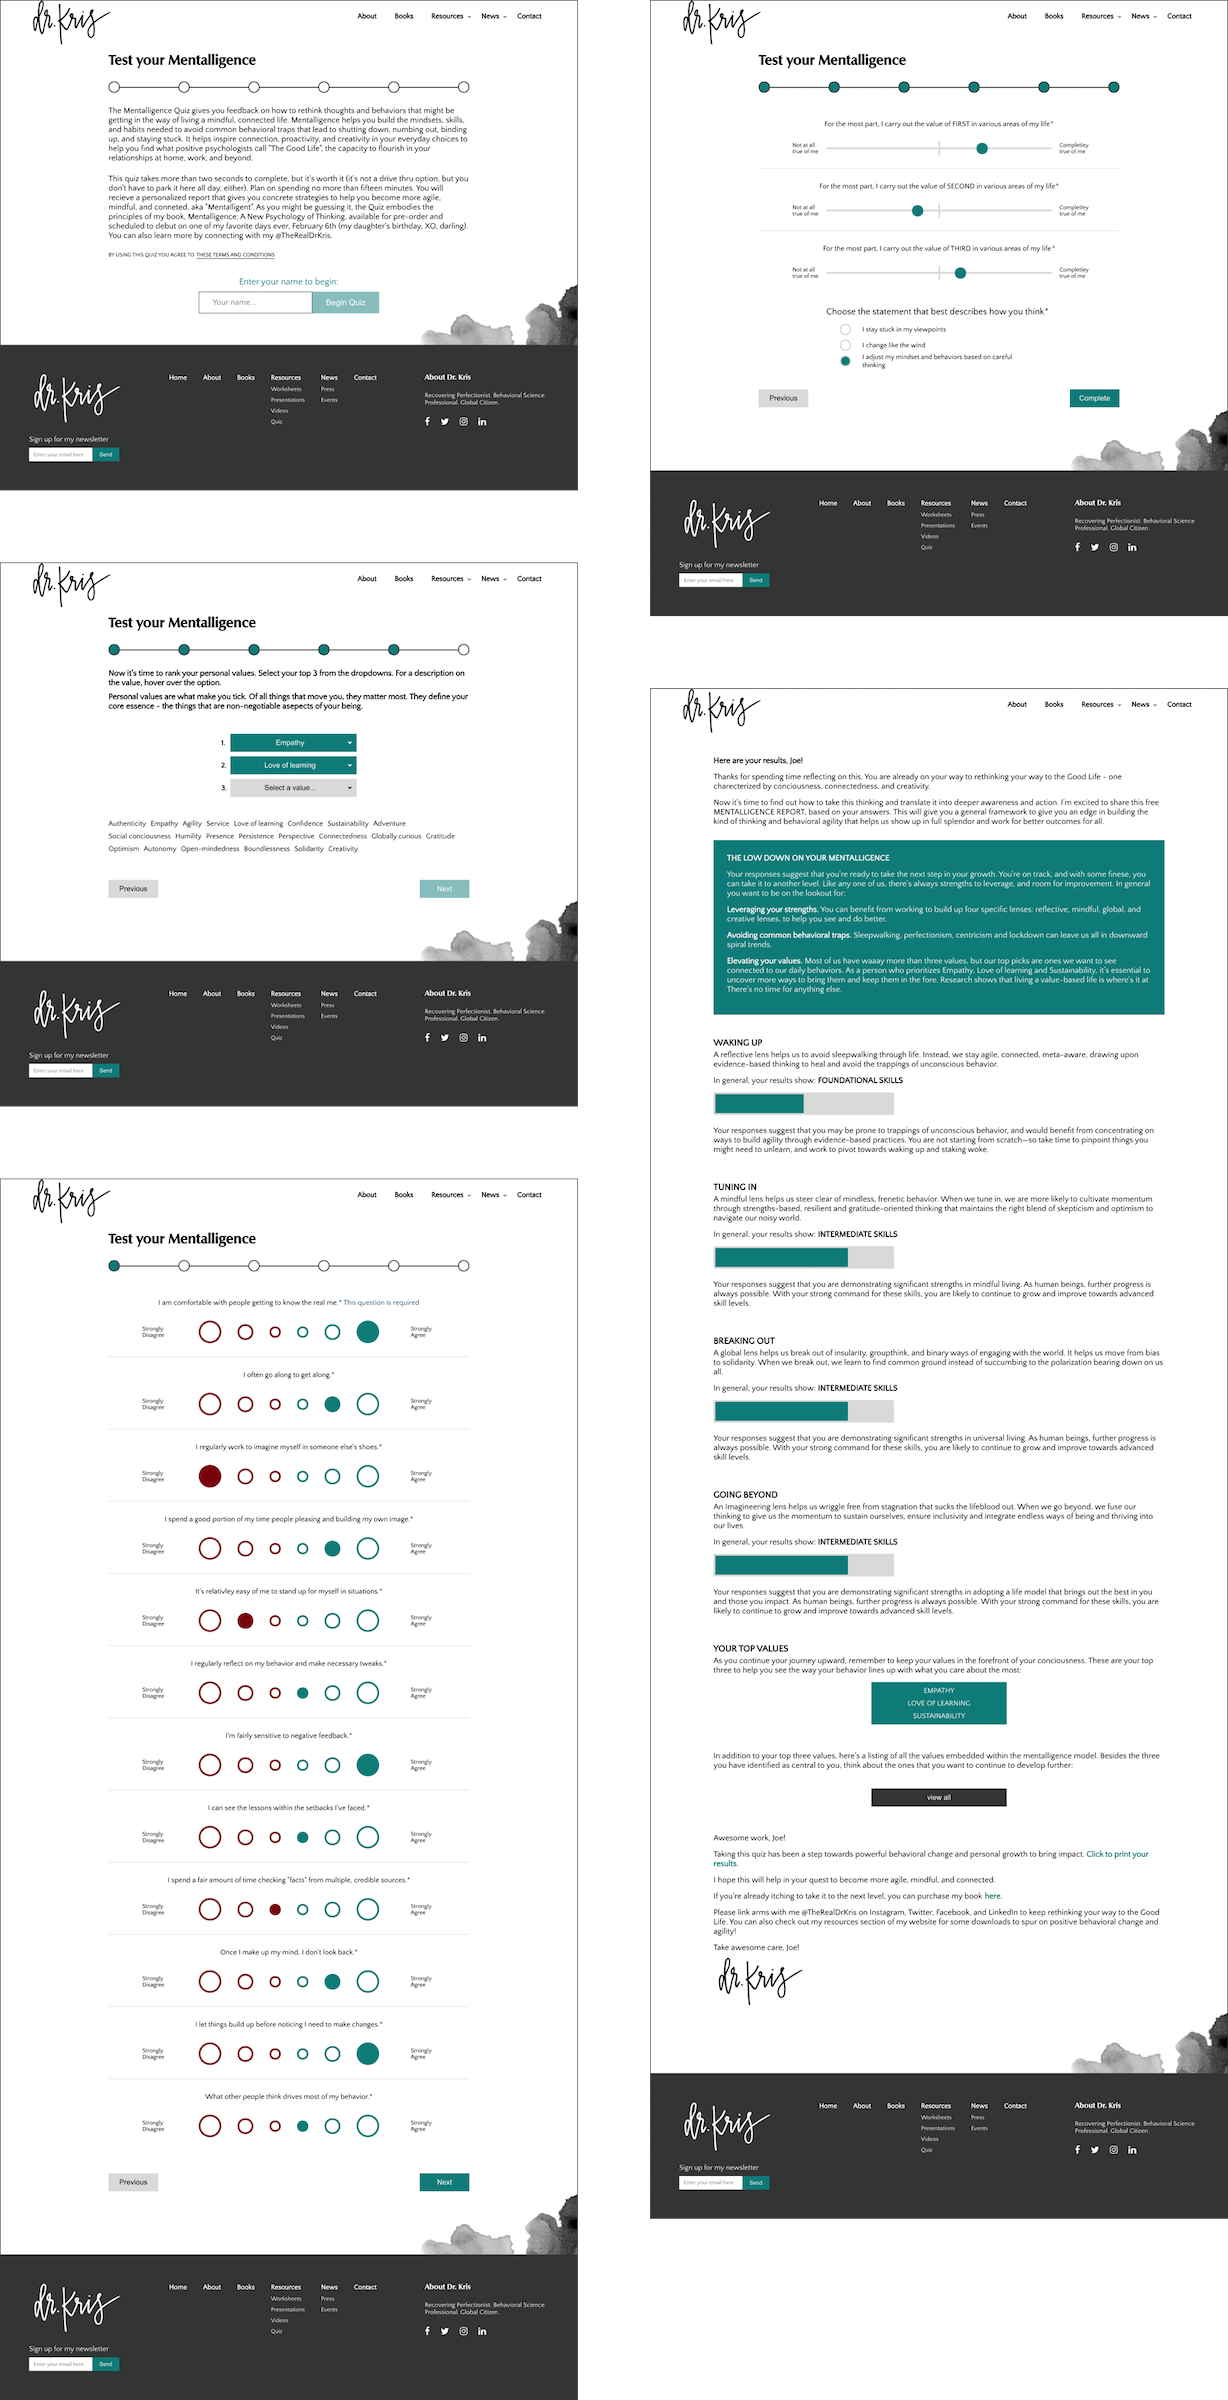 Five screens of the quiz I developed for the site. Different steps include ranking options and agreeing or disagreeing with statements.